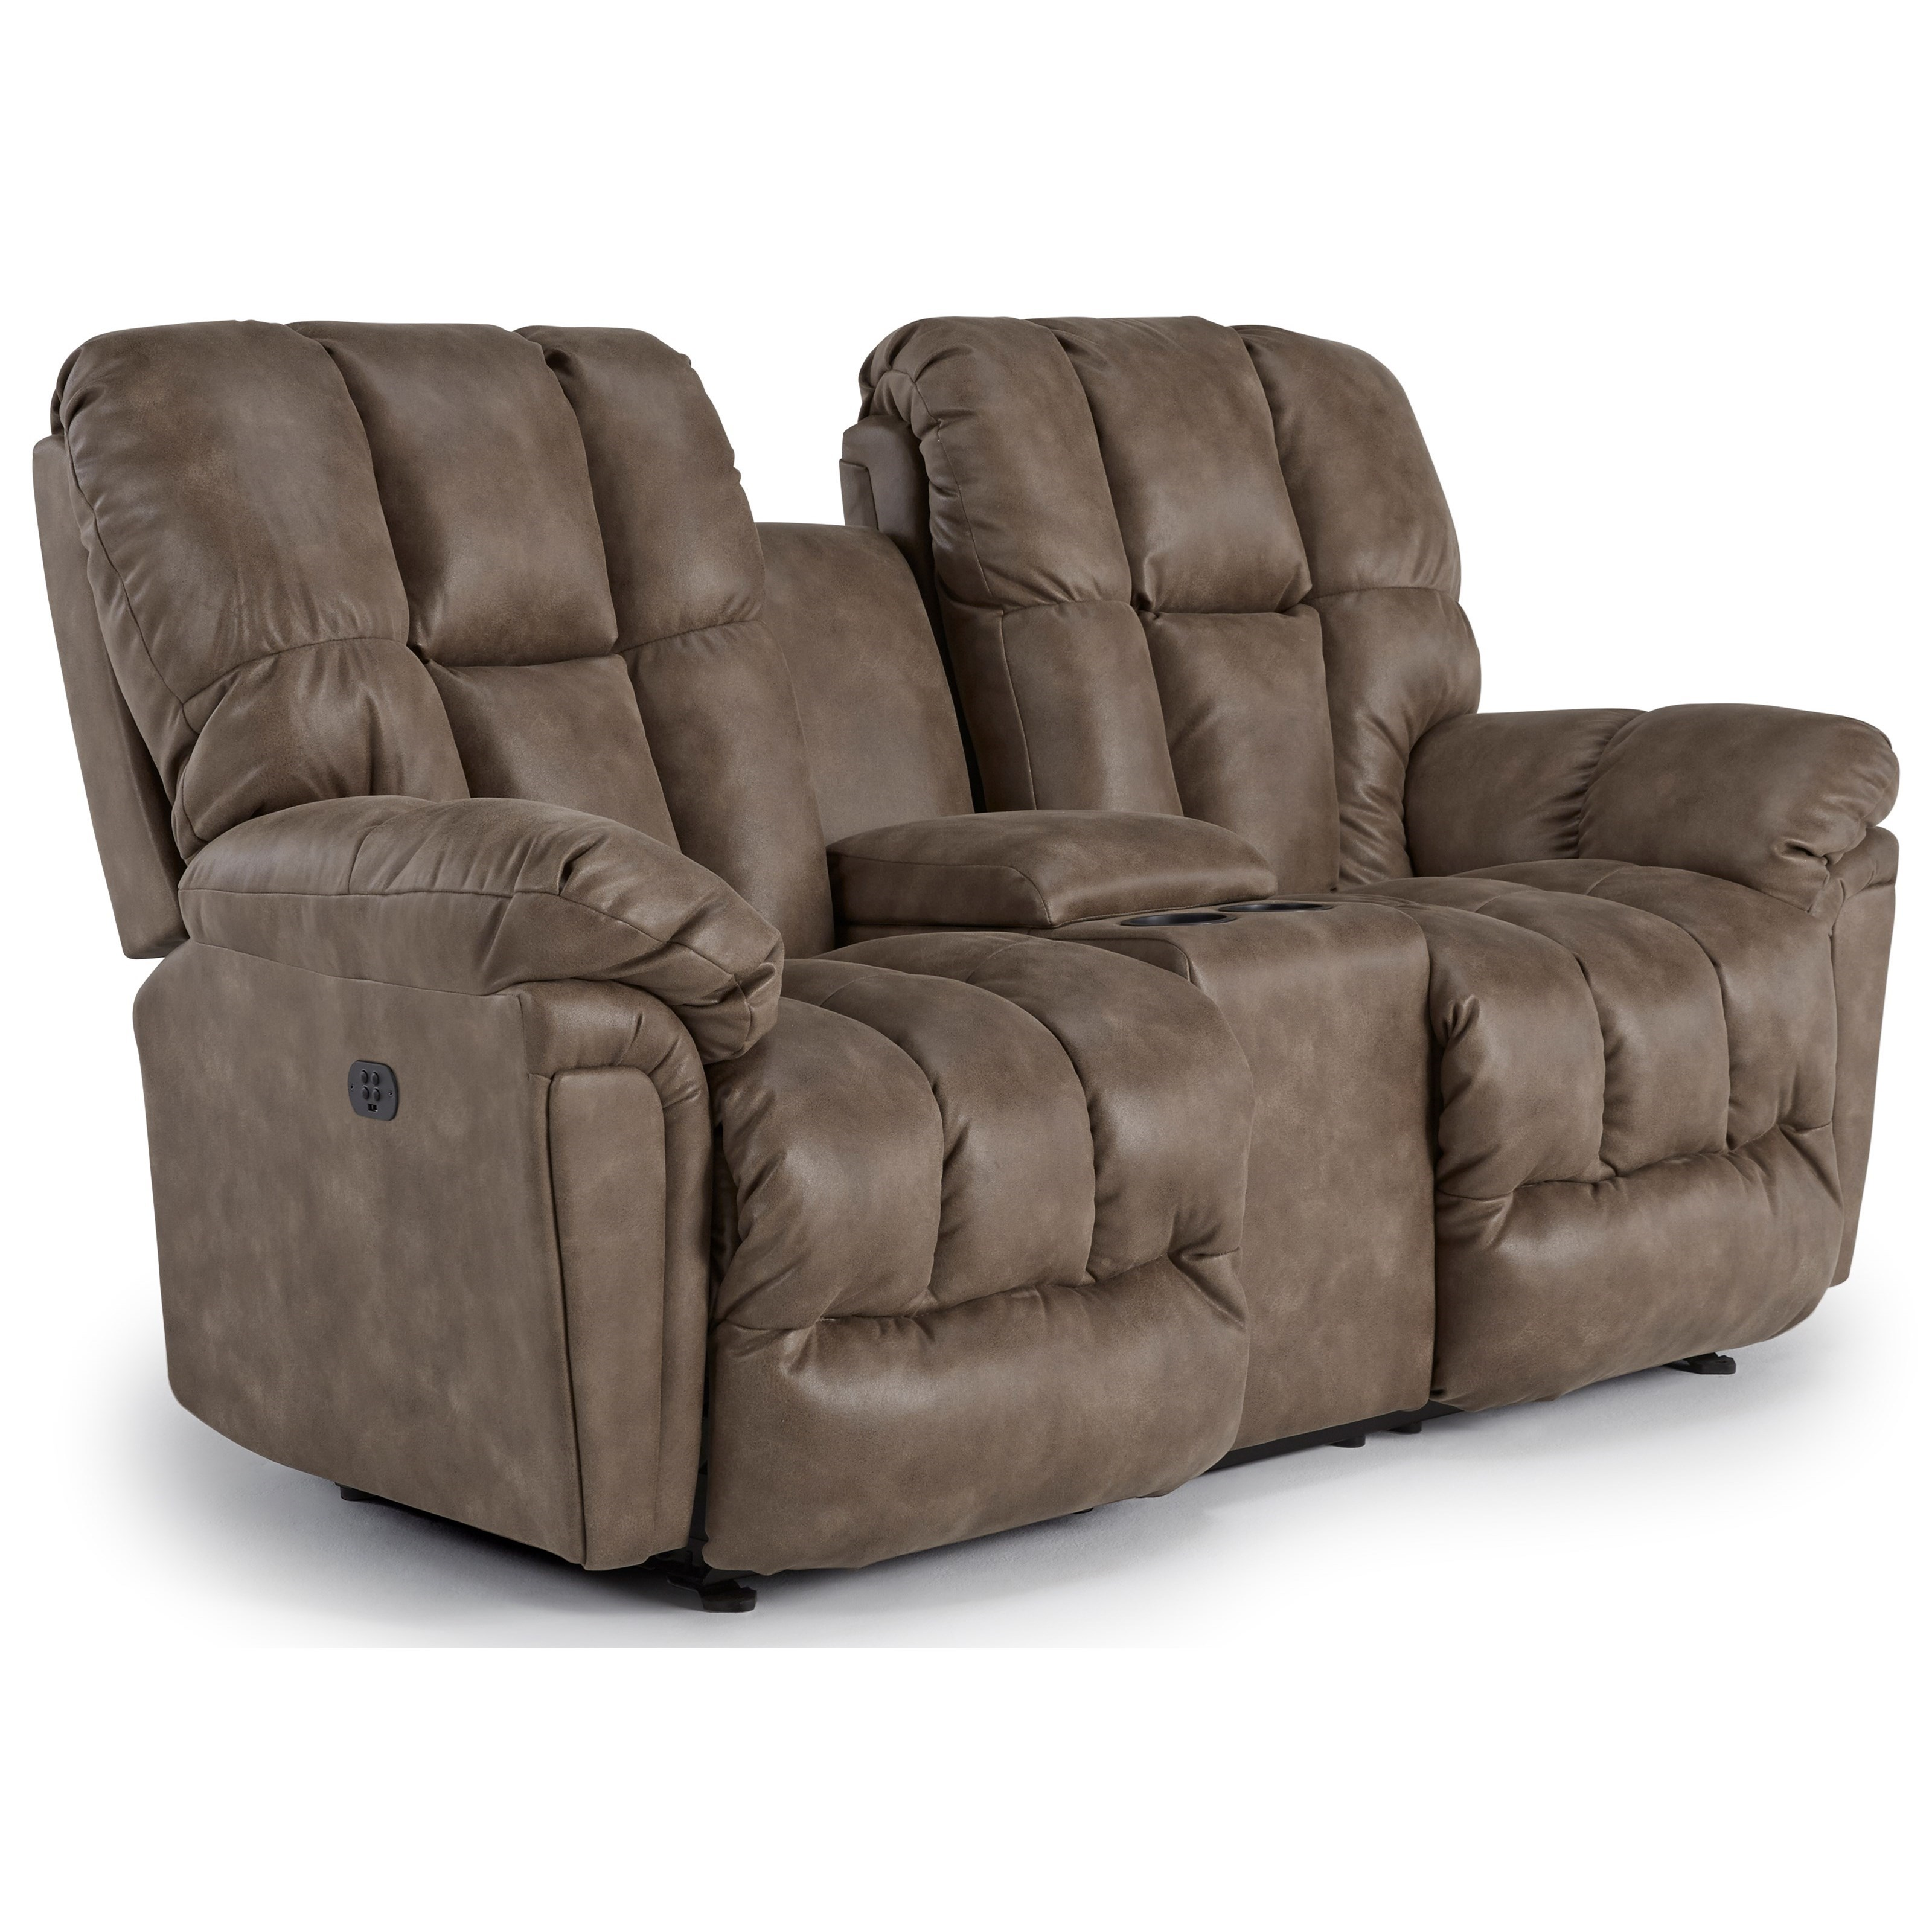 Lucas Pwr Space Saver Reclining Loveseat w/ Cnsle by Bravo Furniture at Bennett's Furniture and Mattresses